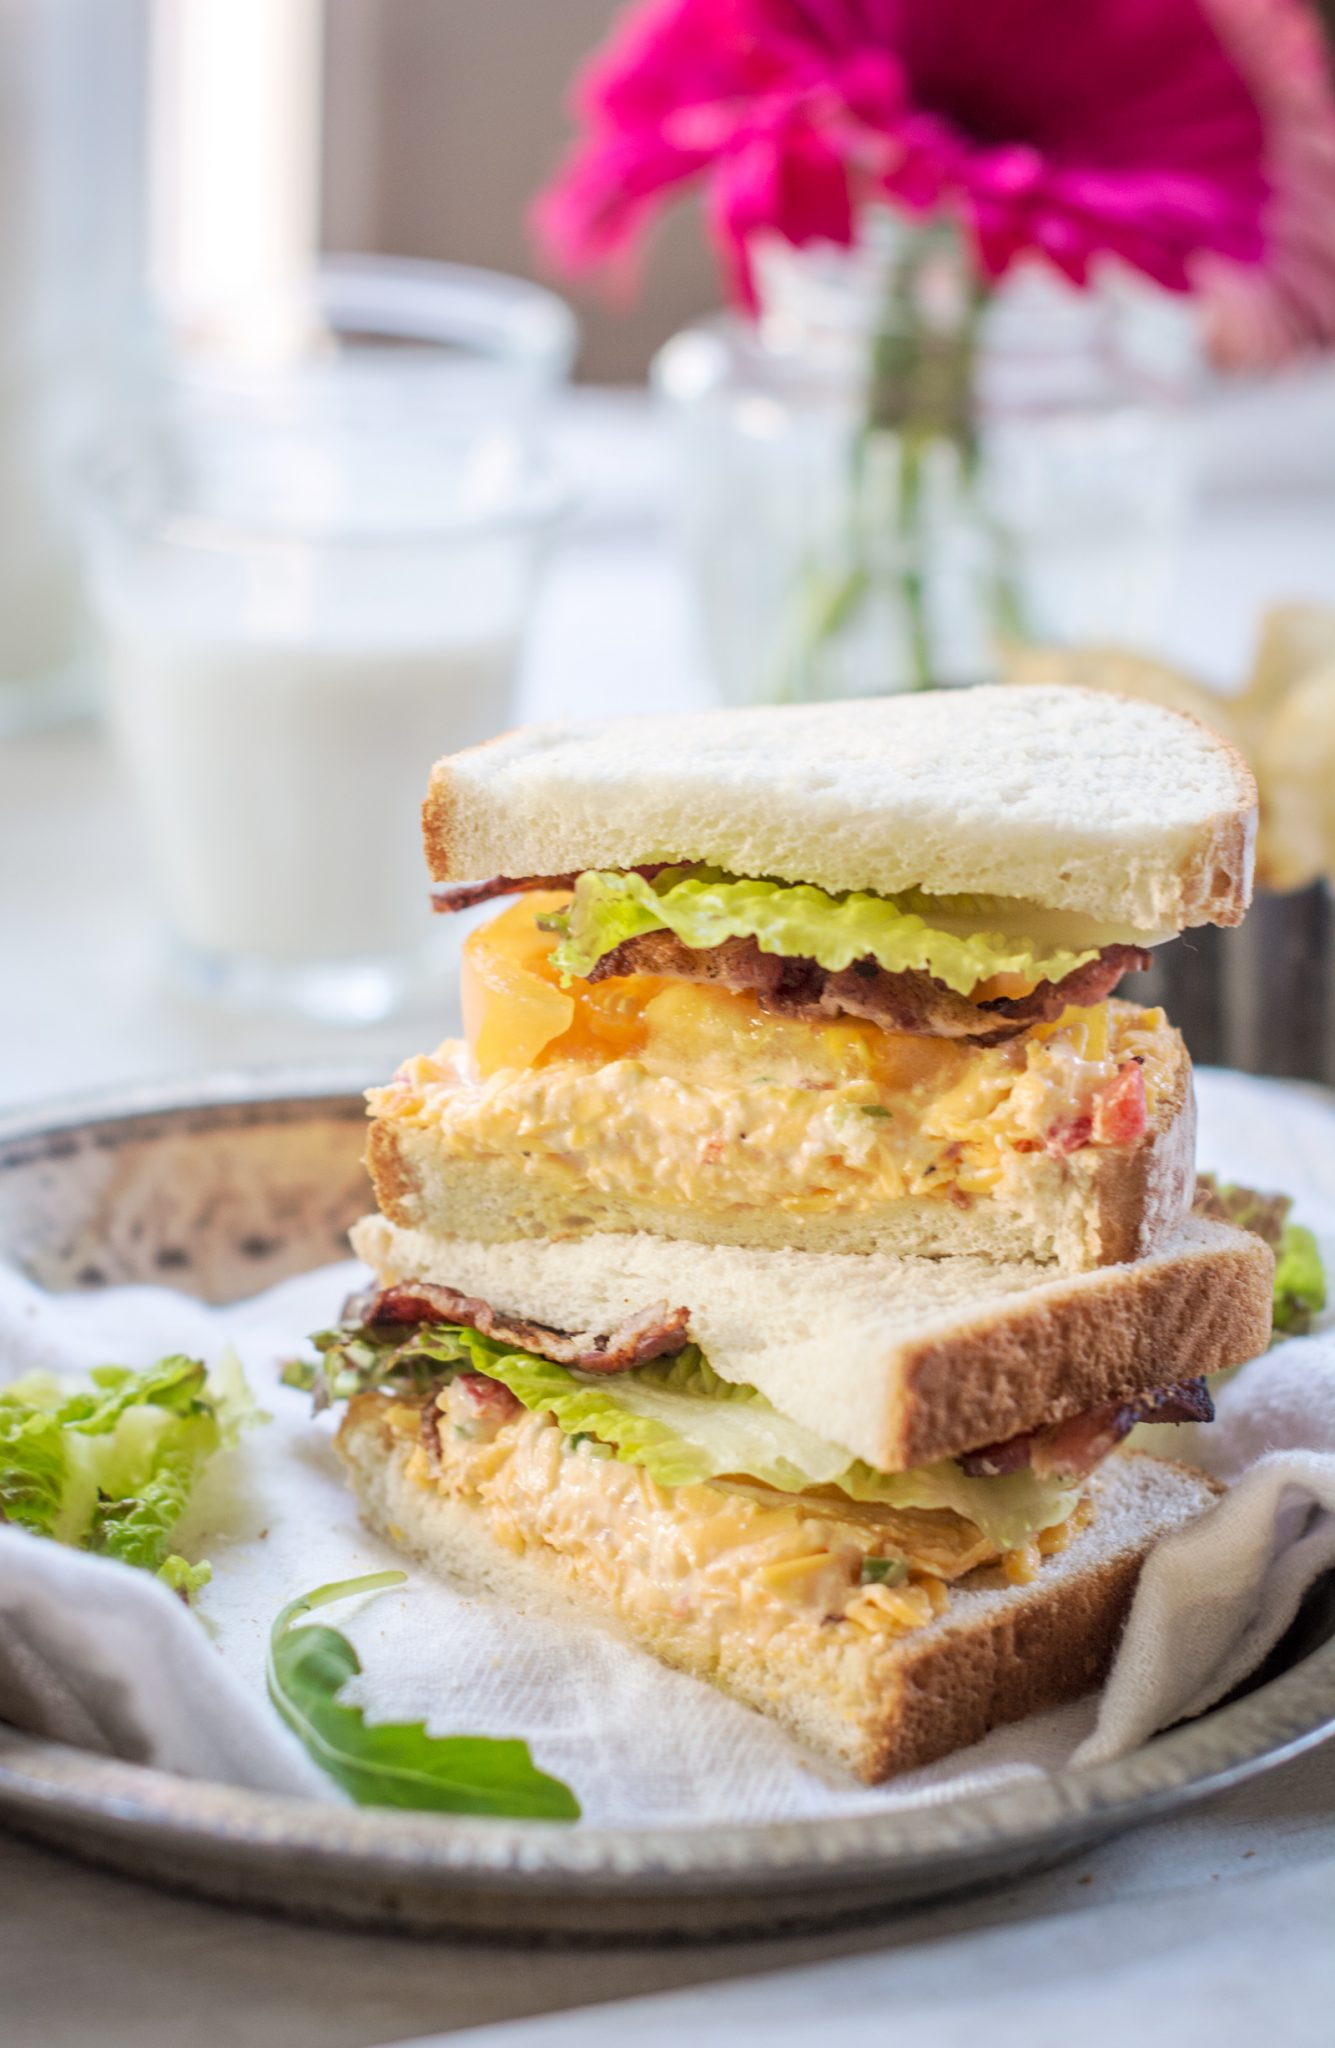 A stacked sandwich on Pepperidge Farm hearty white bread with pimiento cheese, bacon, lettuce and tomatoes.